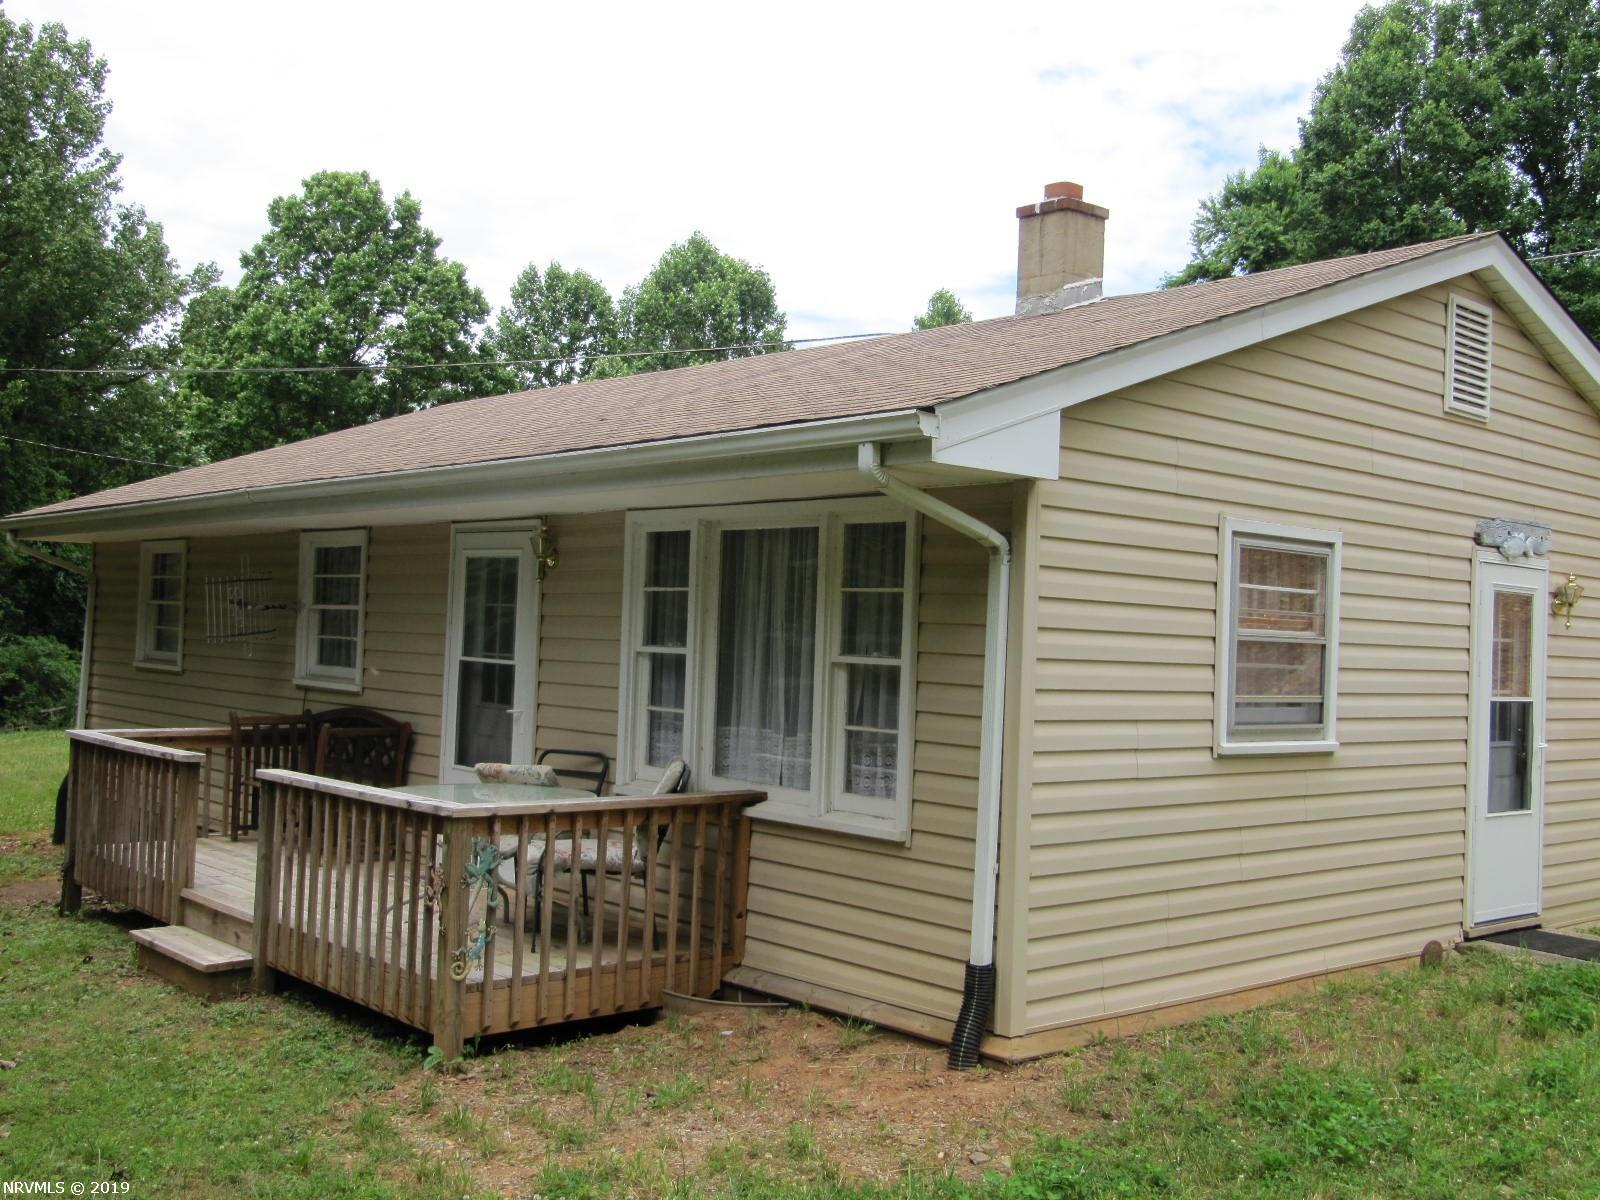 Move in ready. Newly remodeled, heat pump, hot water tanks, microwave, ceiling insulation, vinyl siding and more. Updated wiring and breaker box. Fully furnished. Less than a mile from the Blue Ridge Parkway. Great value, a lot for the money. Great investment property.